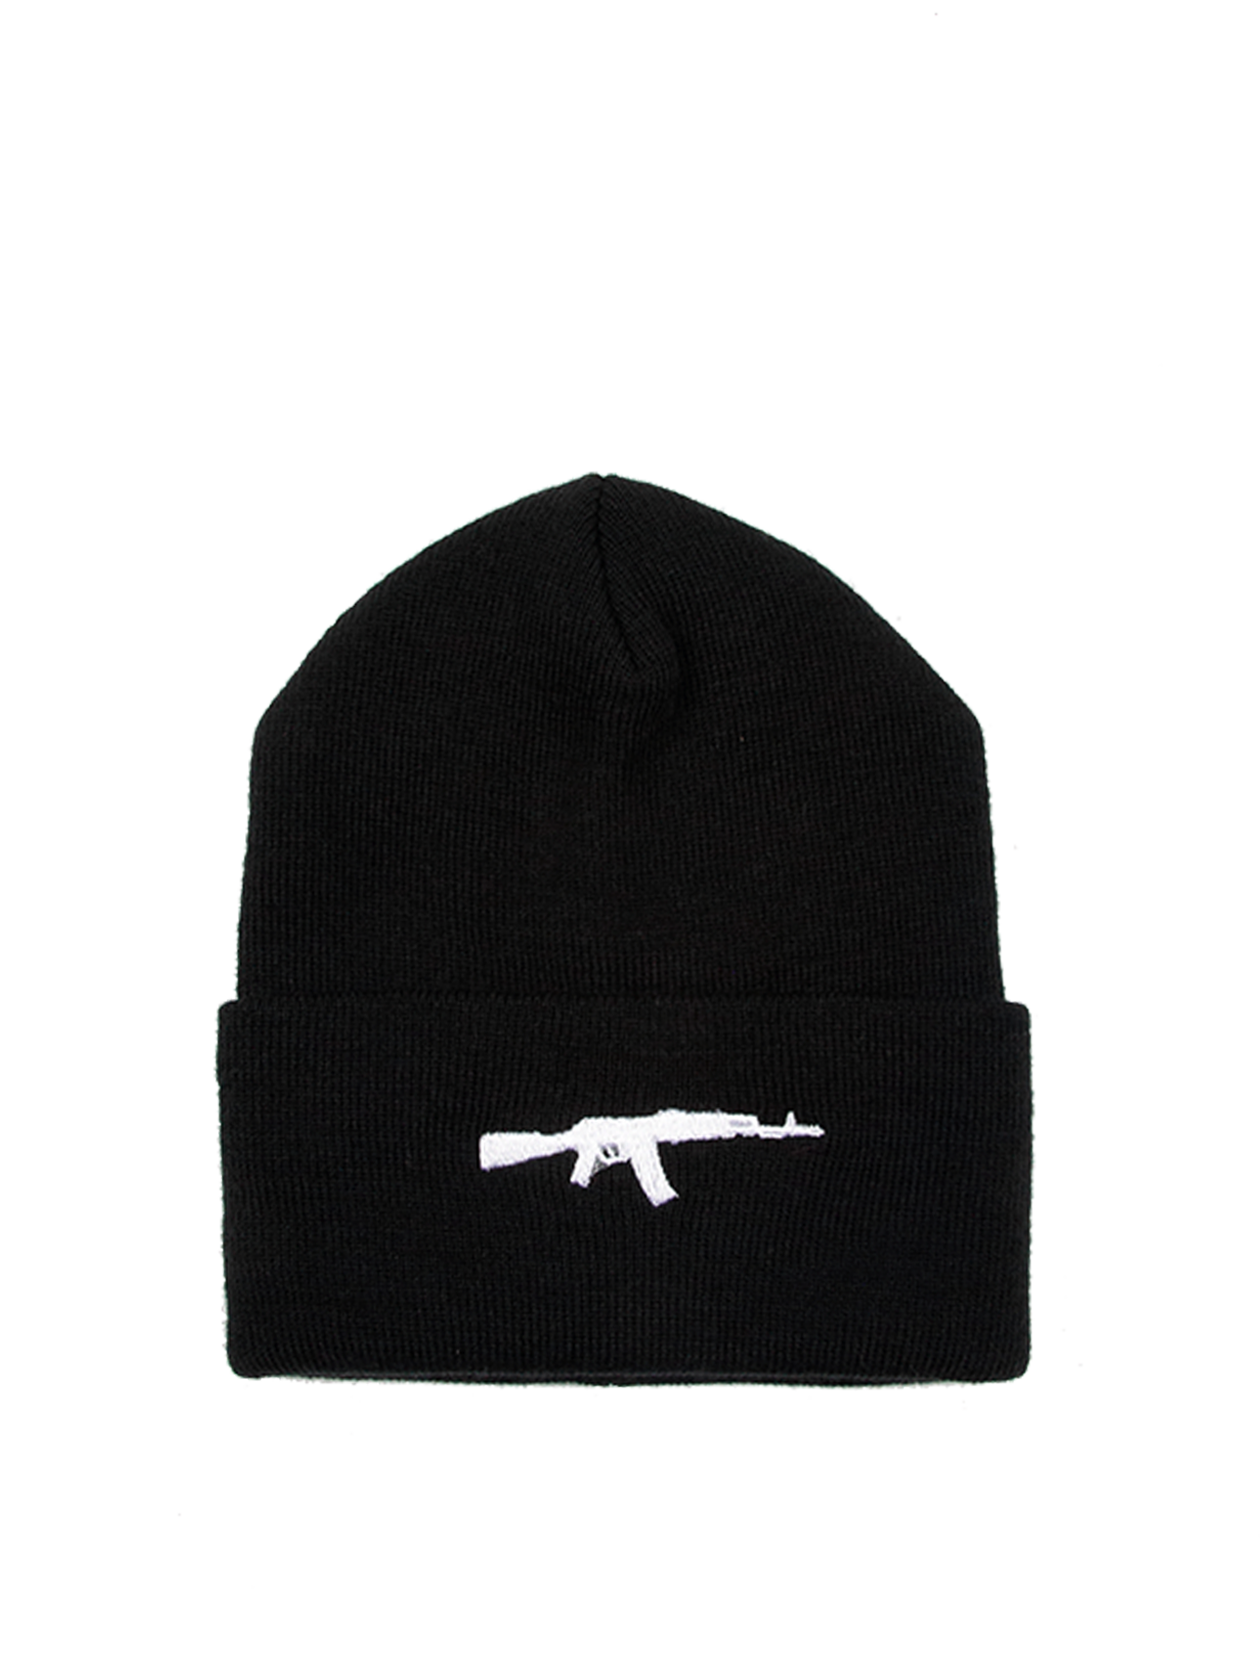 Unisex beanie RIFLEUnisex beanie in black by Black Star Wear. Turn-up brim with a rifle embroidery. 100% acrylic. One size. Perfect for winter.<br><br>size: One size<br>color: Black<br>gender: unisex